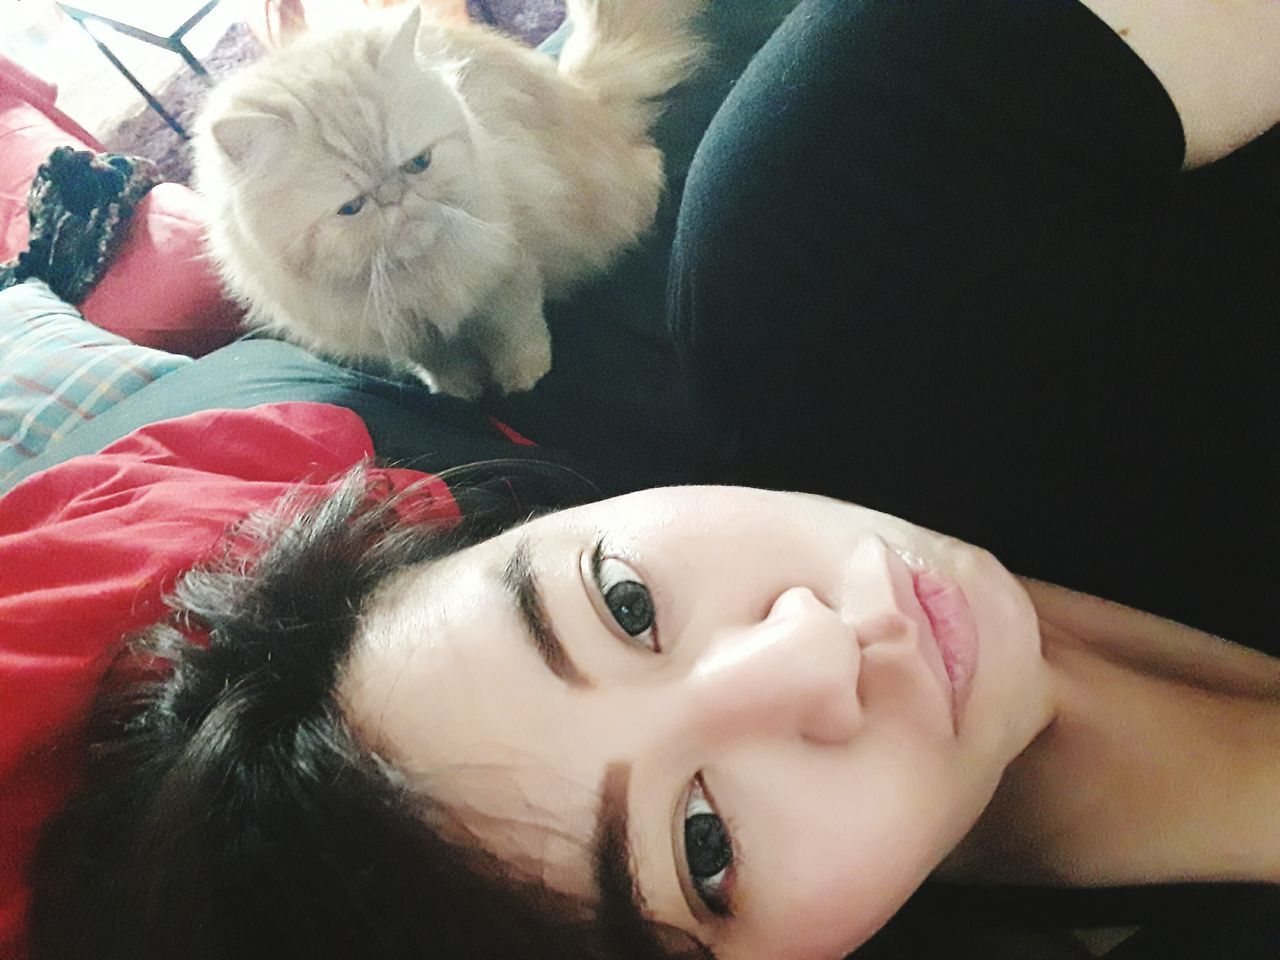 with my fluffy boss Portrait Close-up Pets Self Portrait Self Potrait Self Portrait Around The World Selfie✌ Selfie Portrait Smiling Cat Cats Cat♡ Weekend Persian Cat  Catoftheday Cats 🐱 Cat Lovers Cats Of EyeEm Selfportrait Selfies Selfie ✌